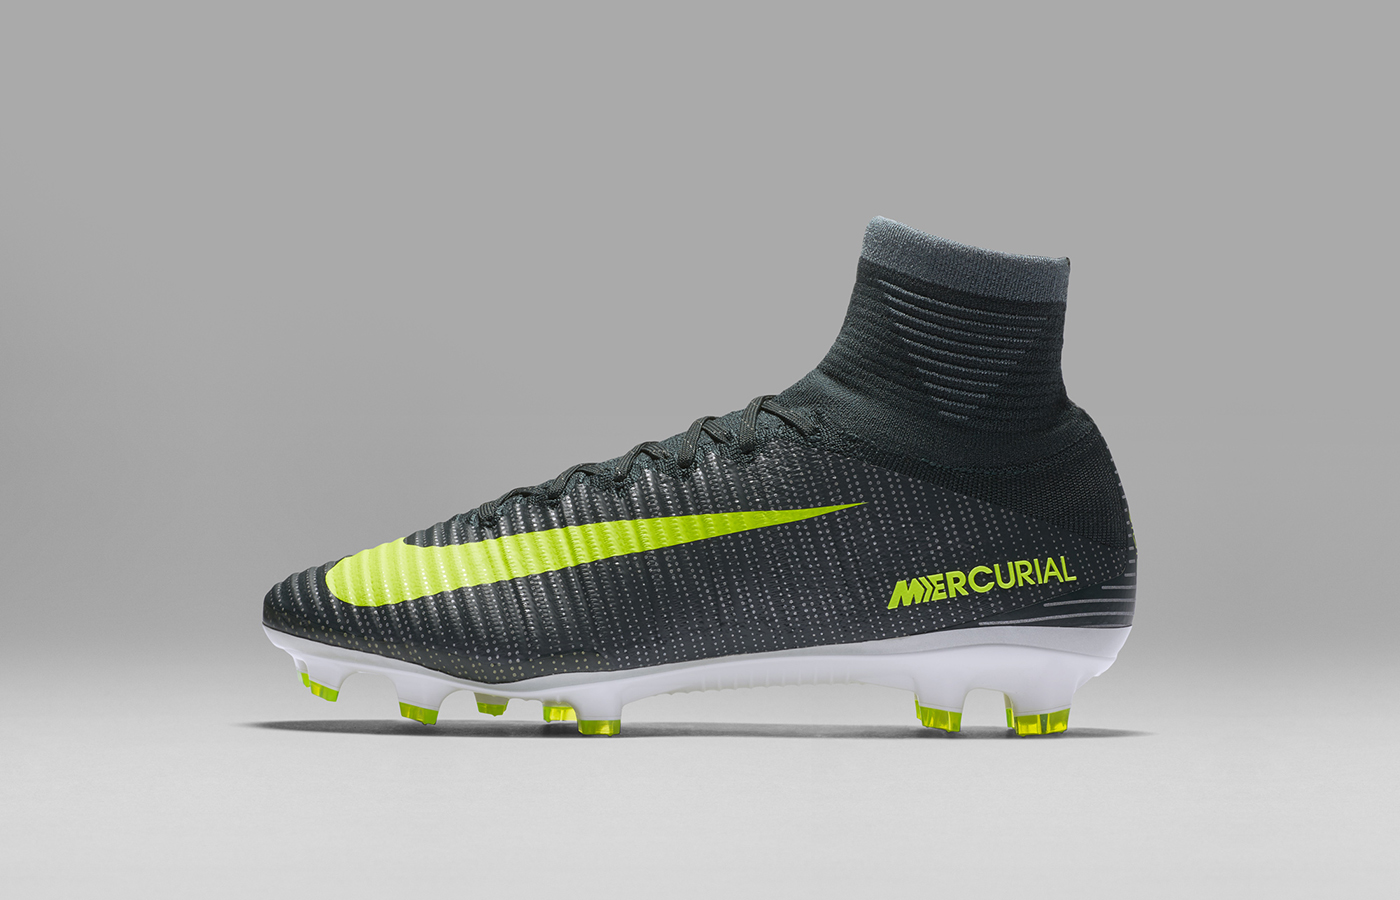 ho16_gfb_cr7_chapter_3_mercurial_superfly_fg_01_07_62871